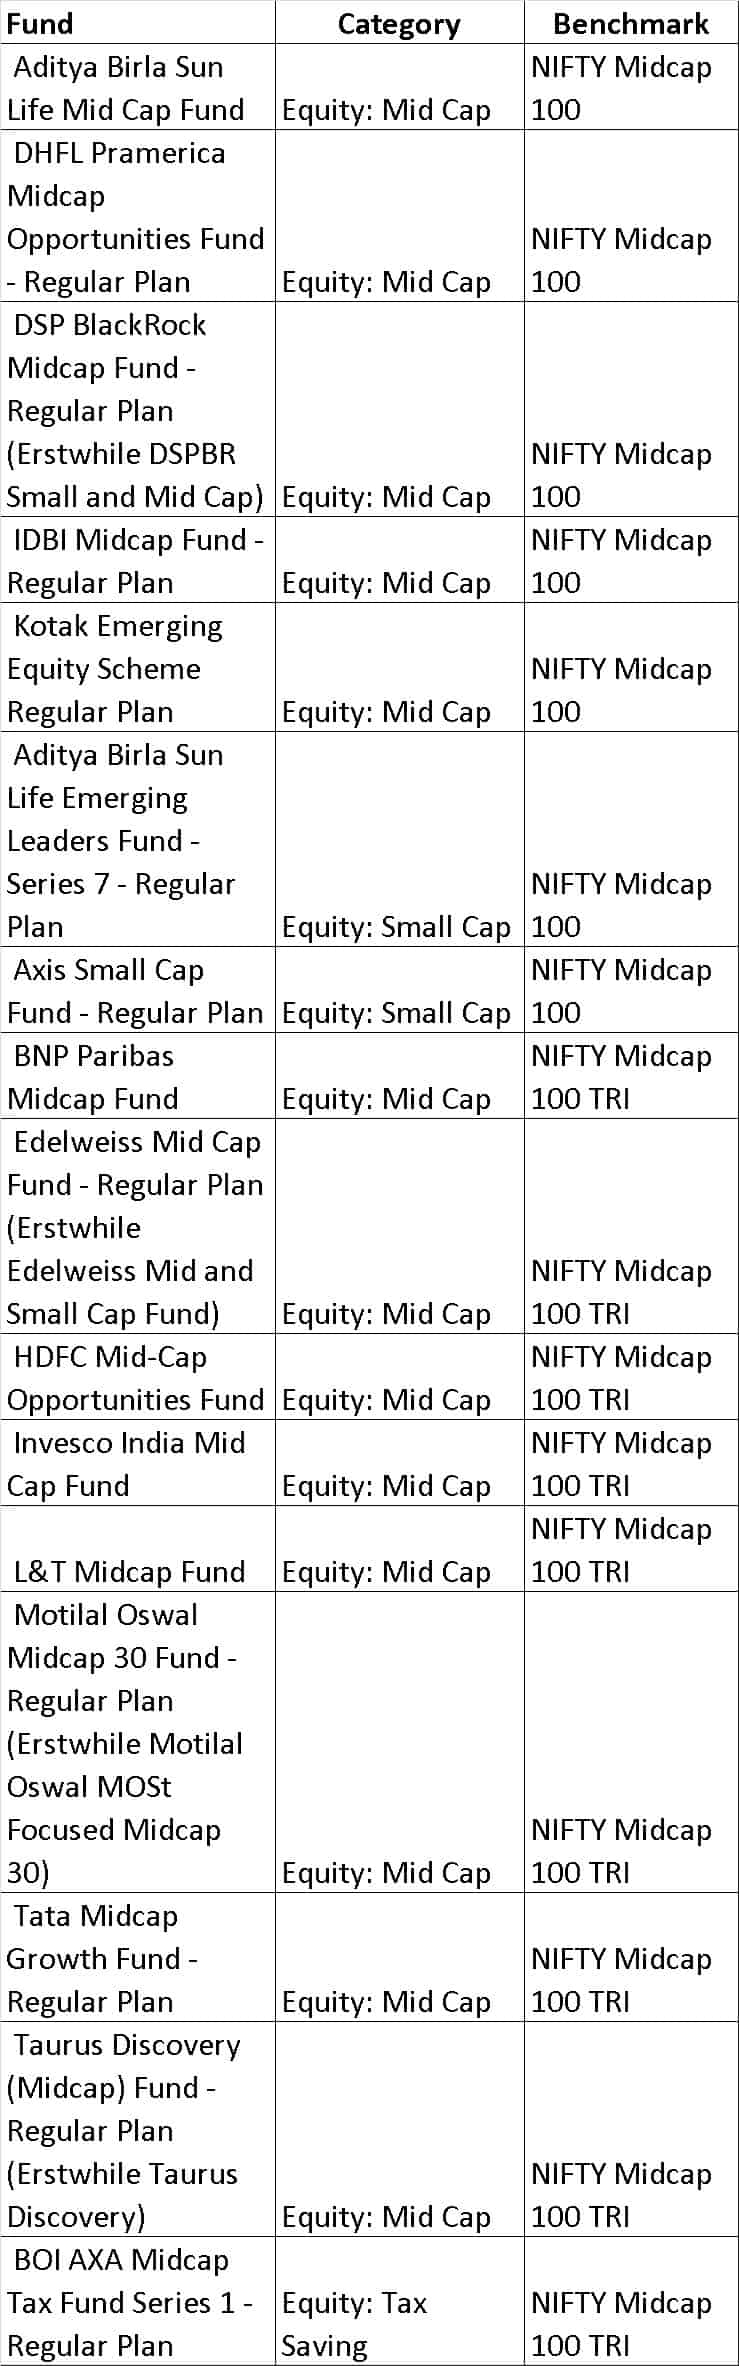 Nifty midcap 100 - List of mutual fund benchmarks (2018) with funds sorted by benchmark